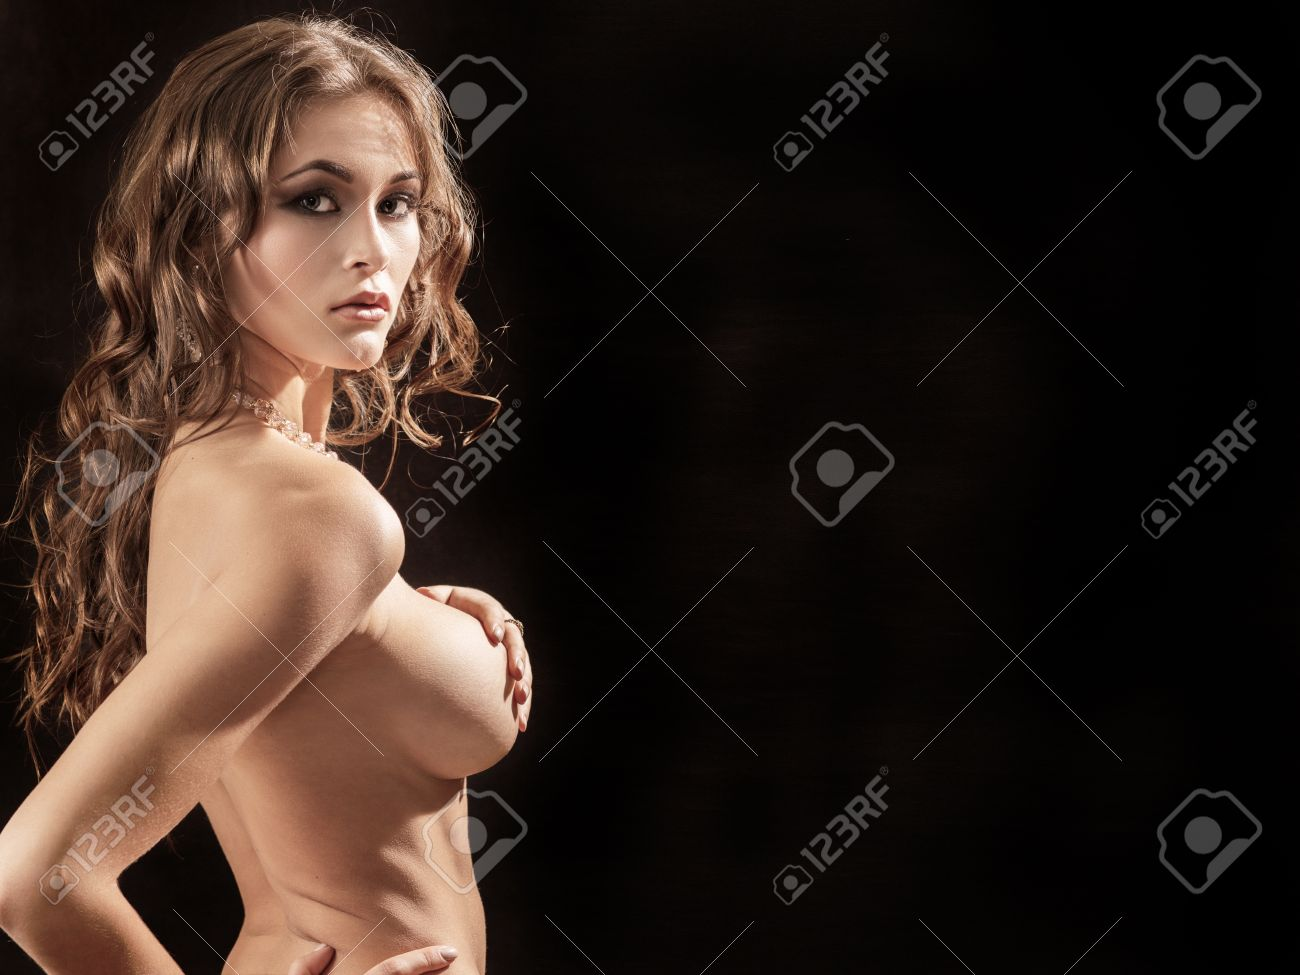 side boob stock photos. royalty free side boob images